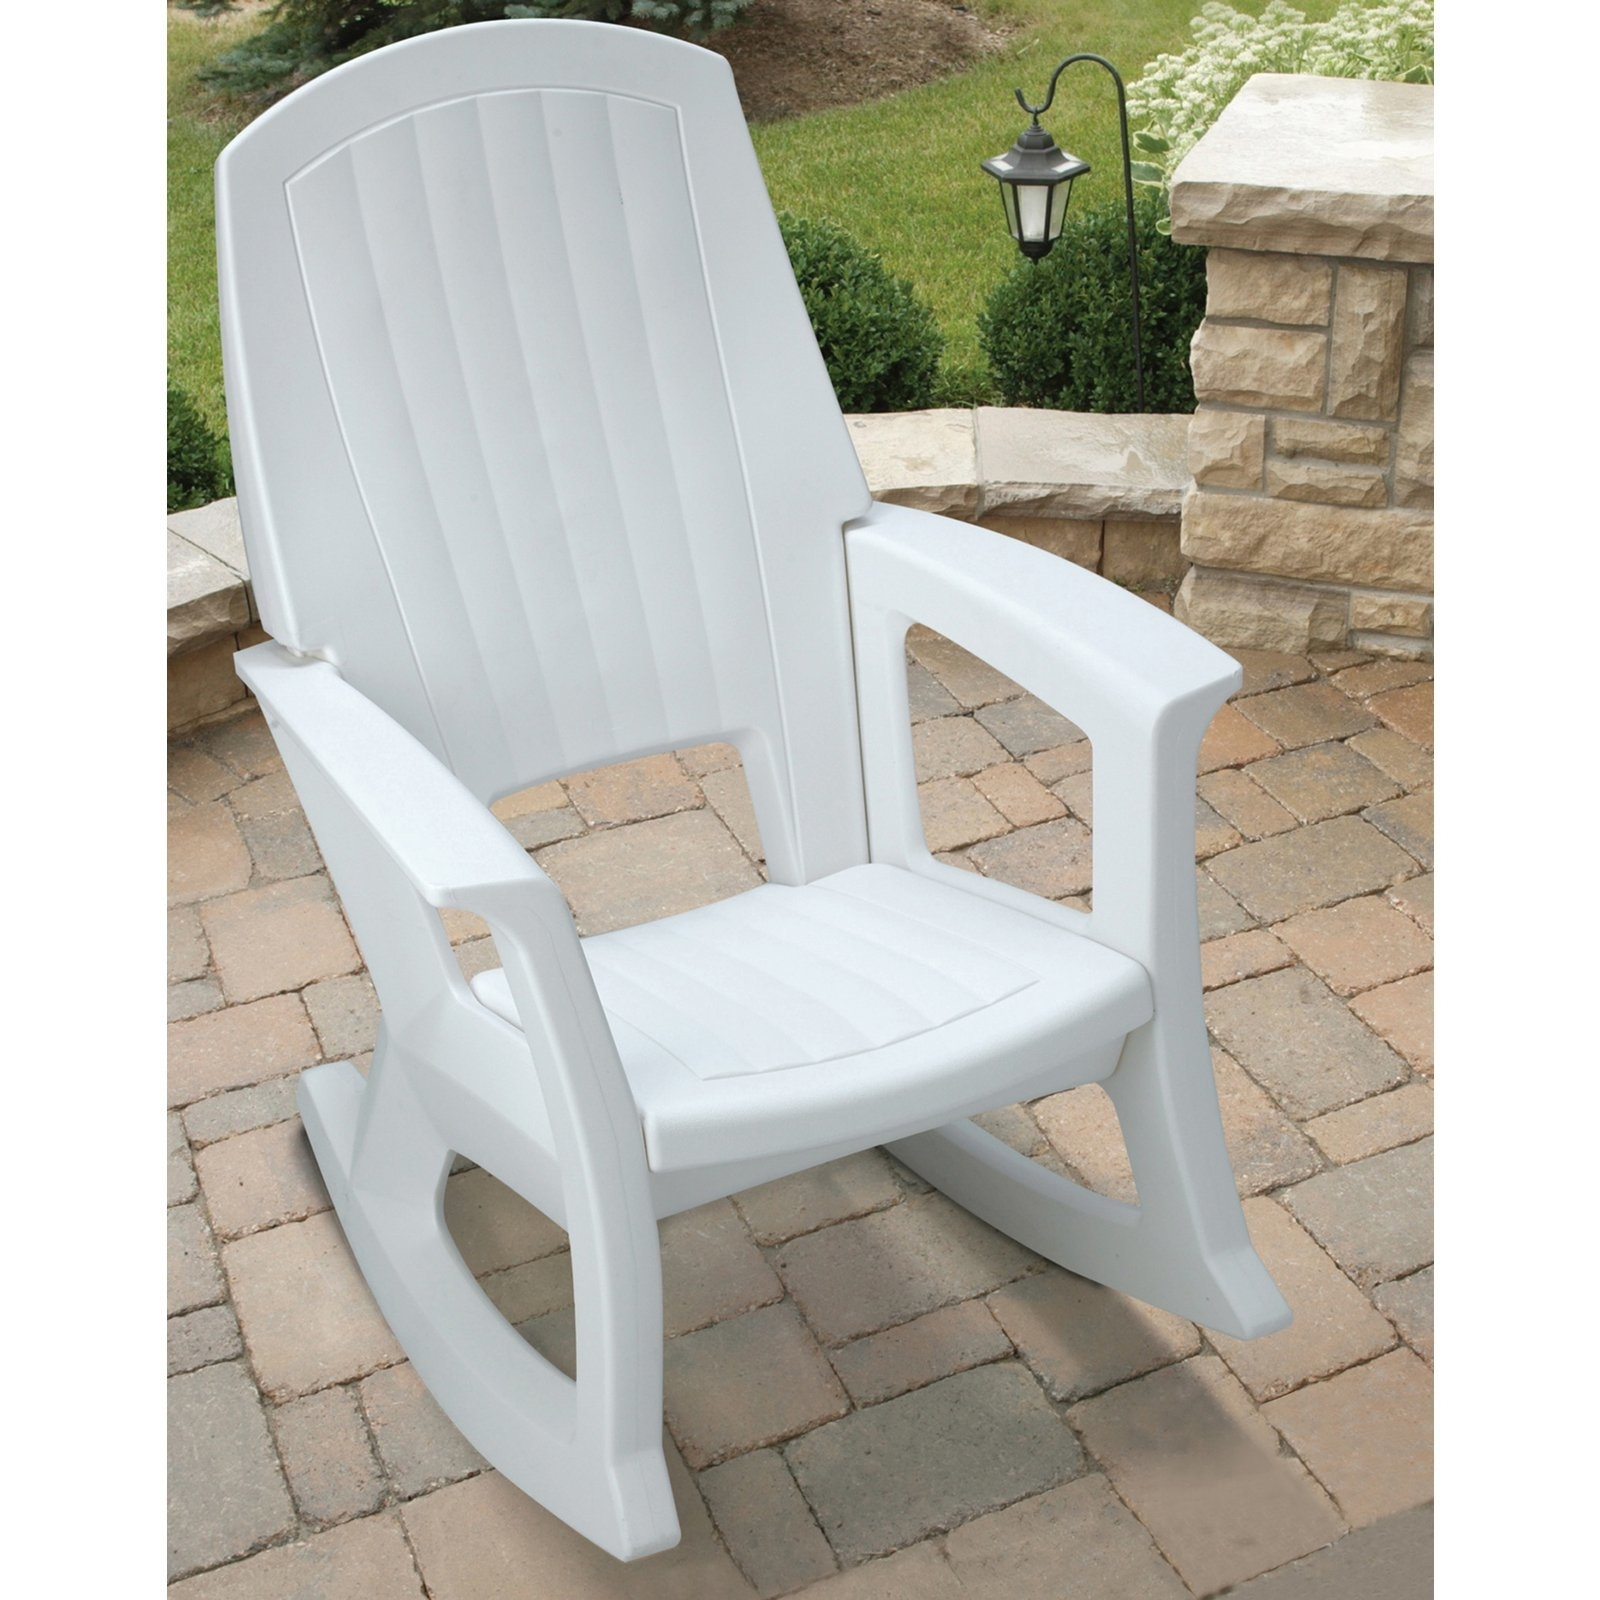 Lovely Cheap Patio Chairs Semco Recycled Plastic Rocking Chair With Regard To Popular Inexpensive Patio Rocking Chairs (View 6 of 15)